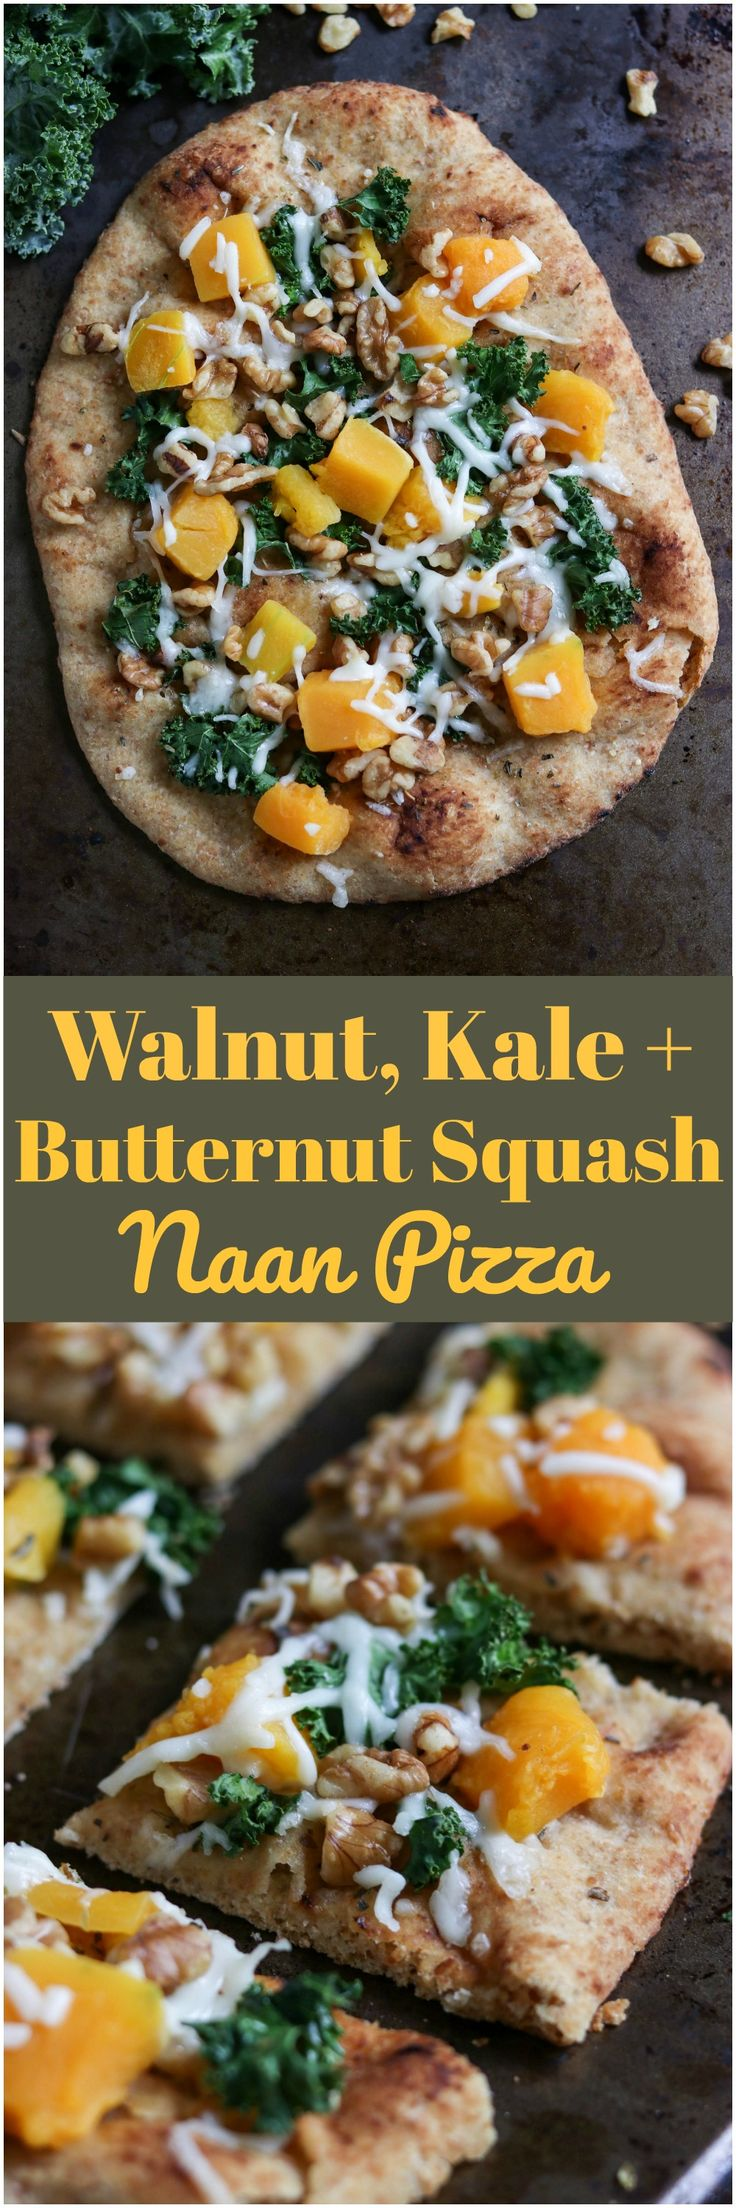 Walnut, Kale   Butternut Squash Naan Pizza. Don't settle for delivery. This simple dinner is ready in minutes and with only 5 minutes of prep. The whole family will love it! bewholebeyou.com